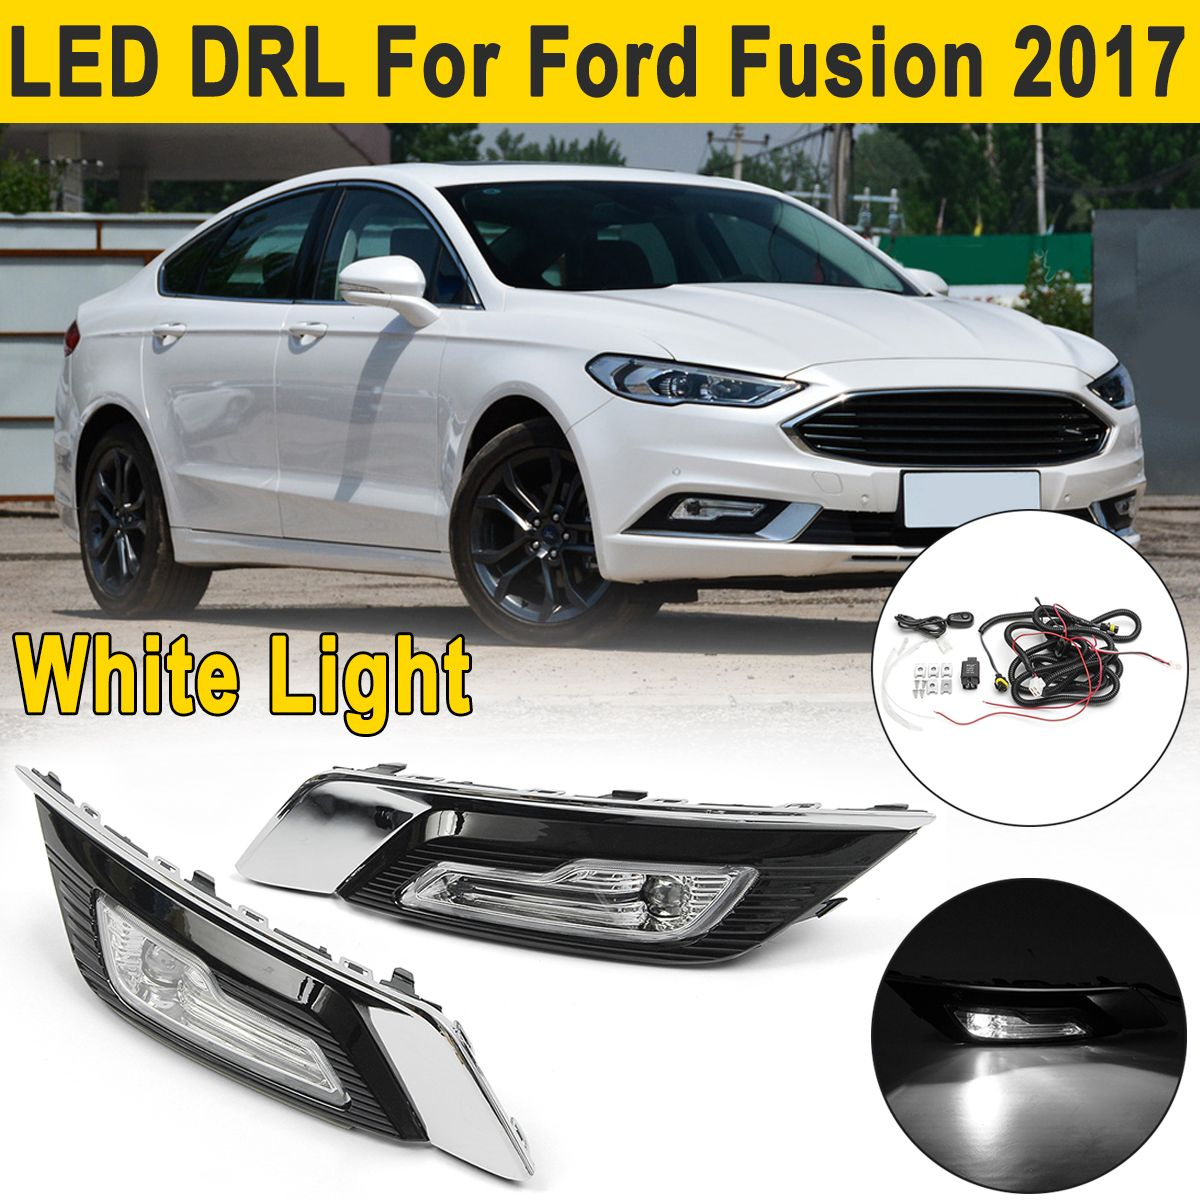 2Pcs LED DRL Daytime Running Lights Lamps Turn Signal Fog Lights Wire for Ford for Fusion for Mondeo 2017 2018 Driving Light